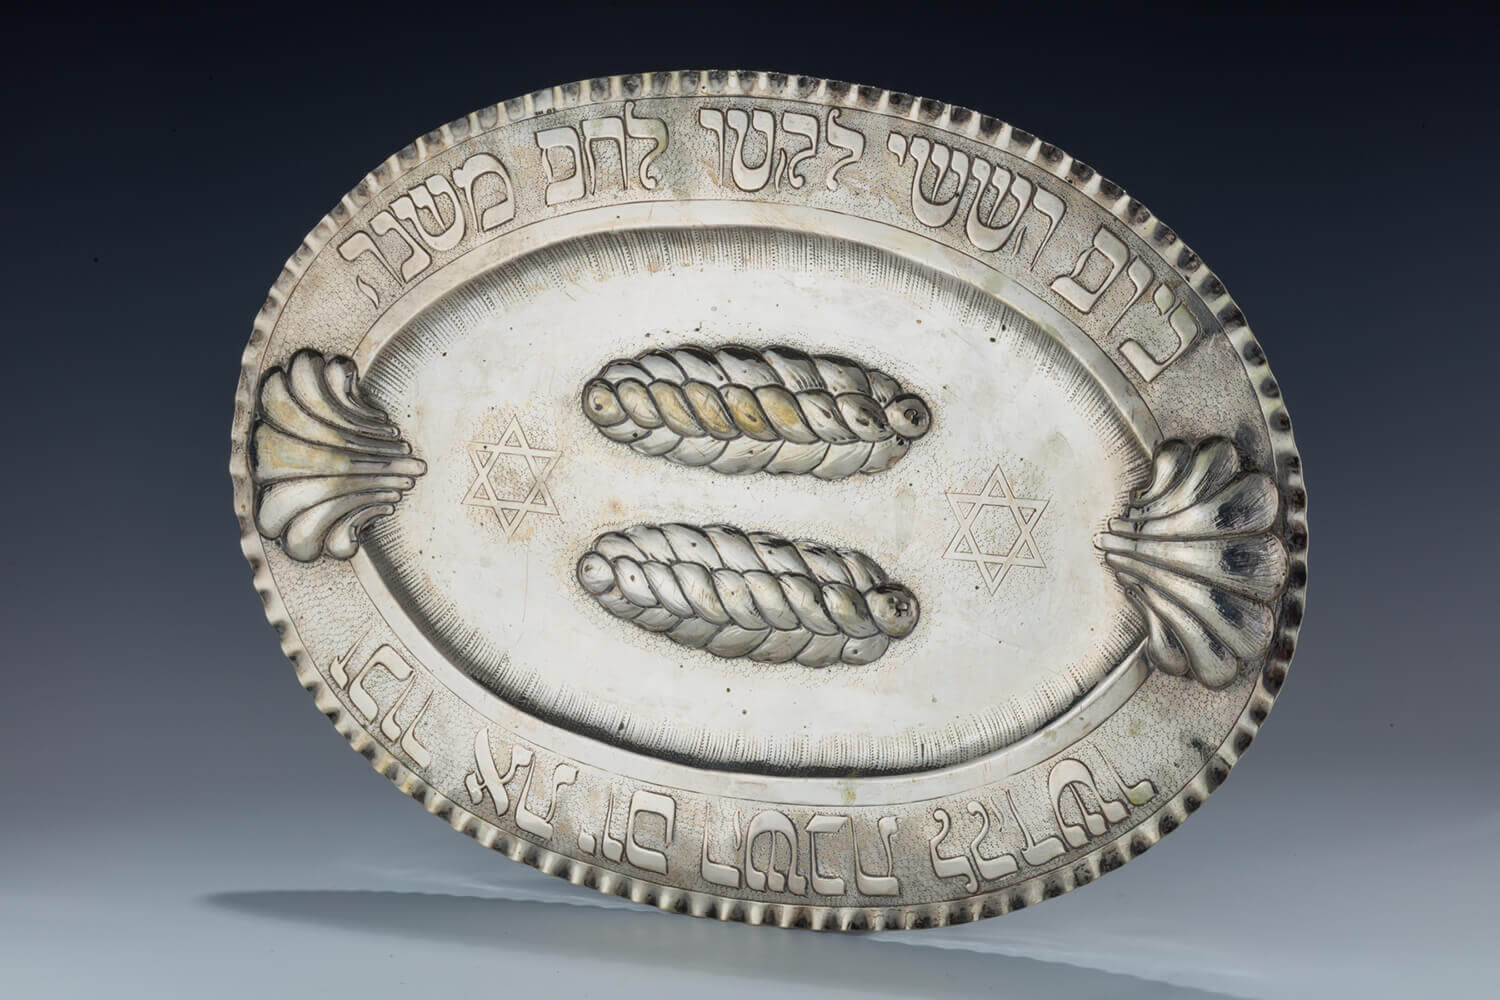 067. A LARGE SILVER CHALLAH TRAY